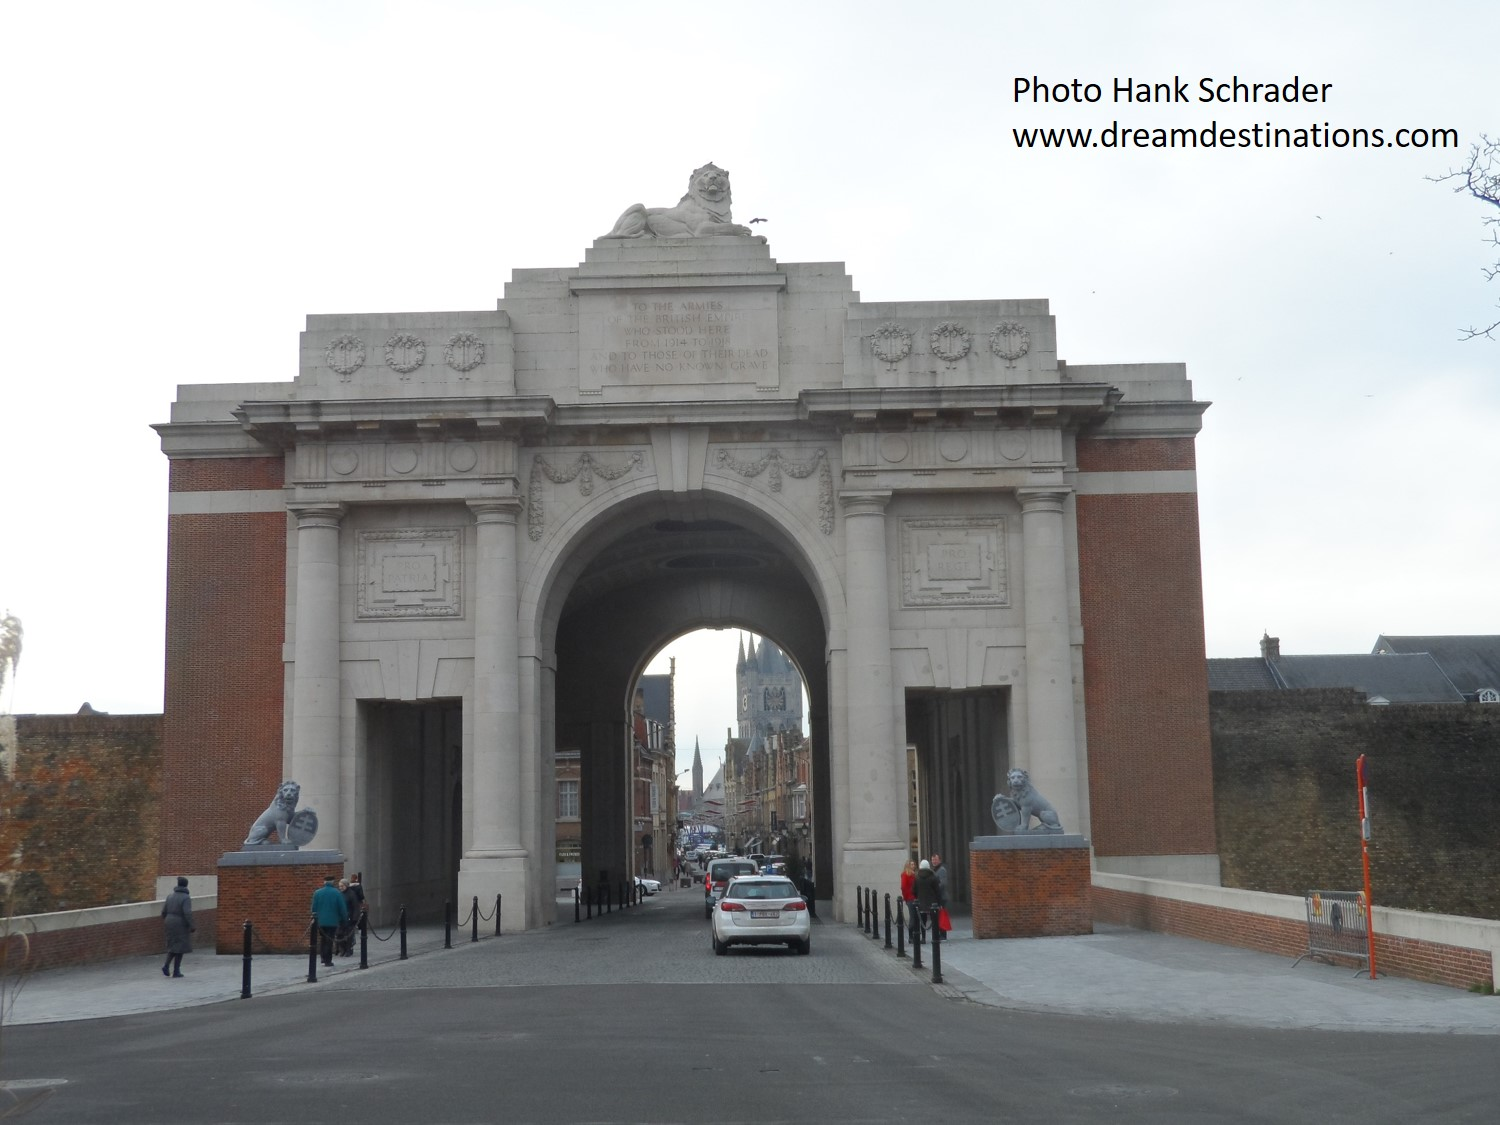 The Menin Gate—the cars and people give you a sense of how large this gate is